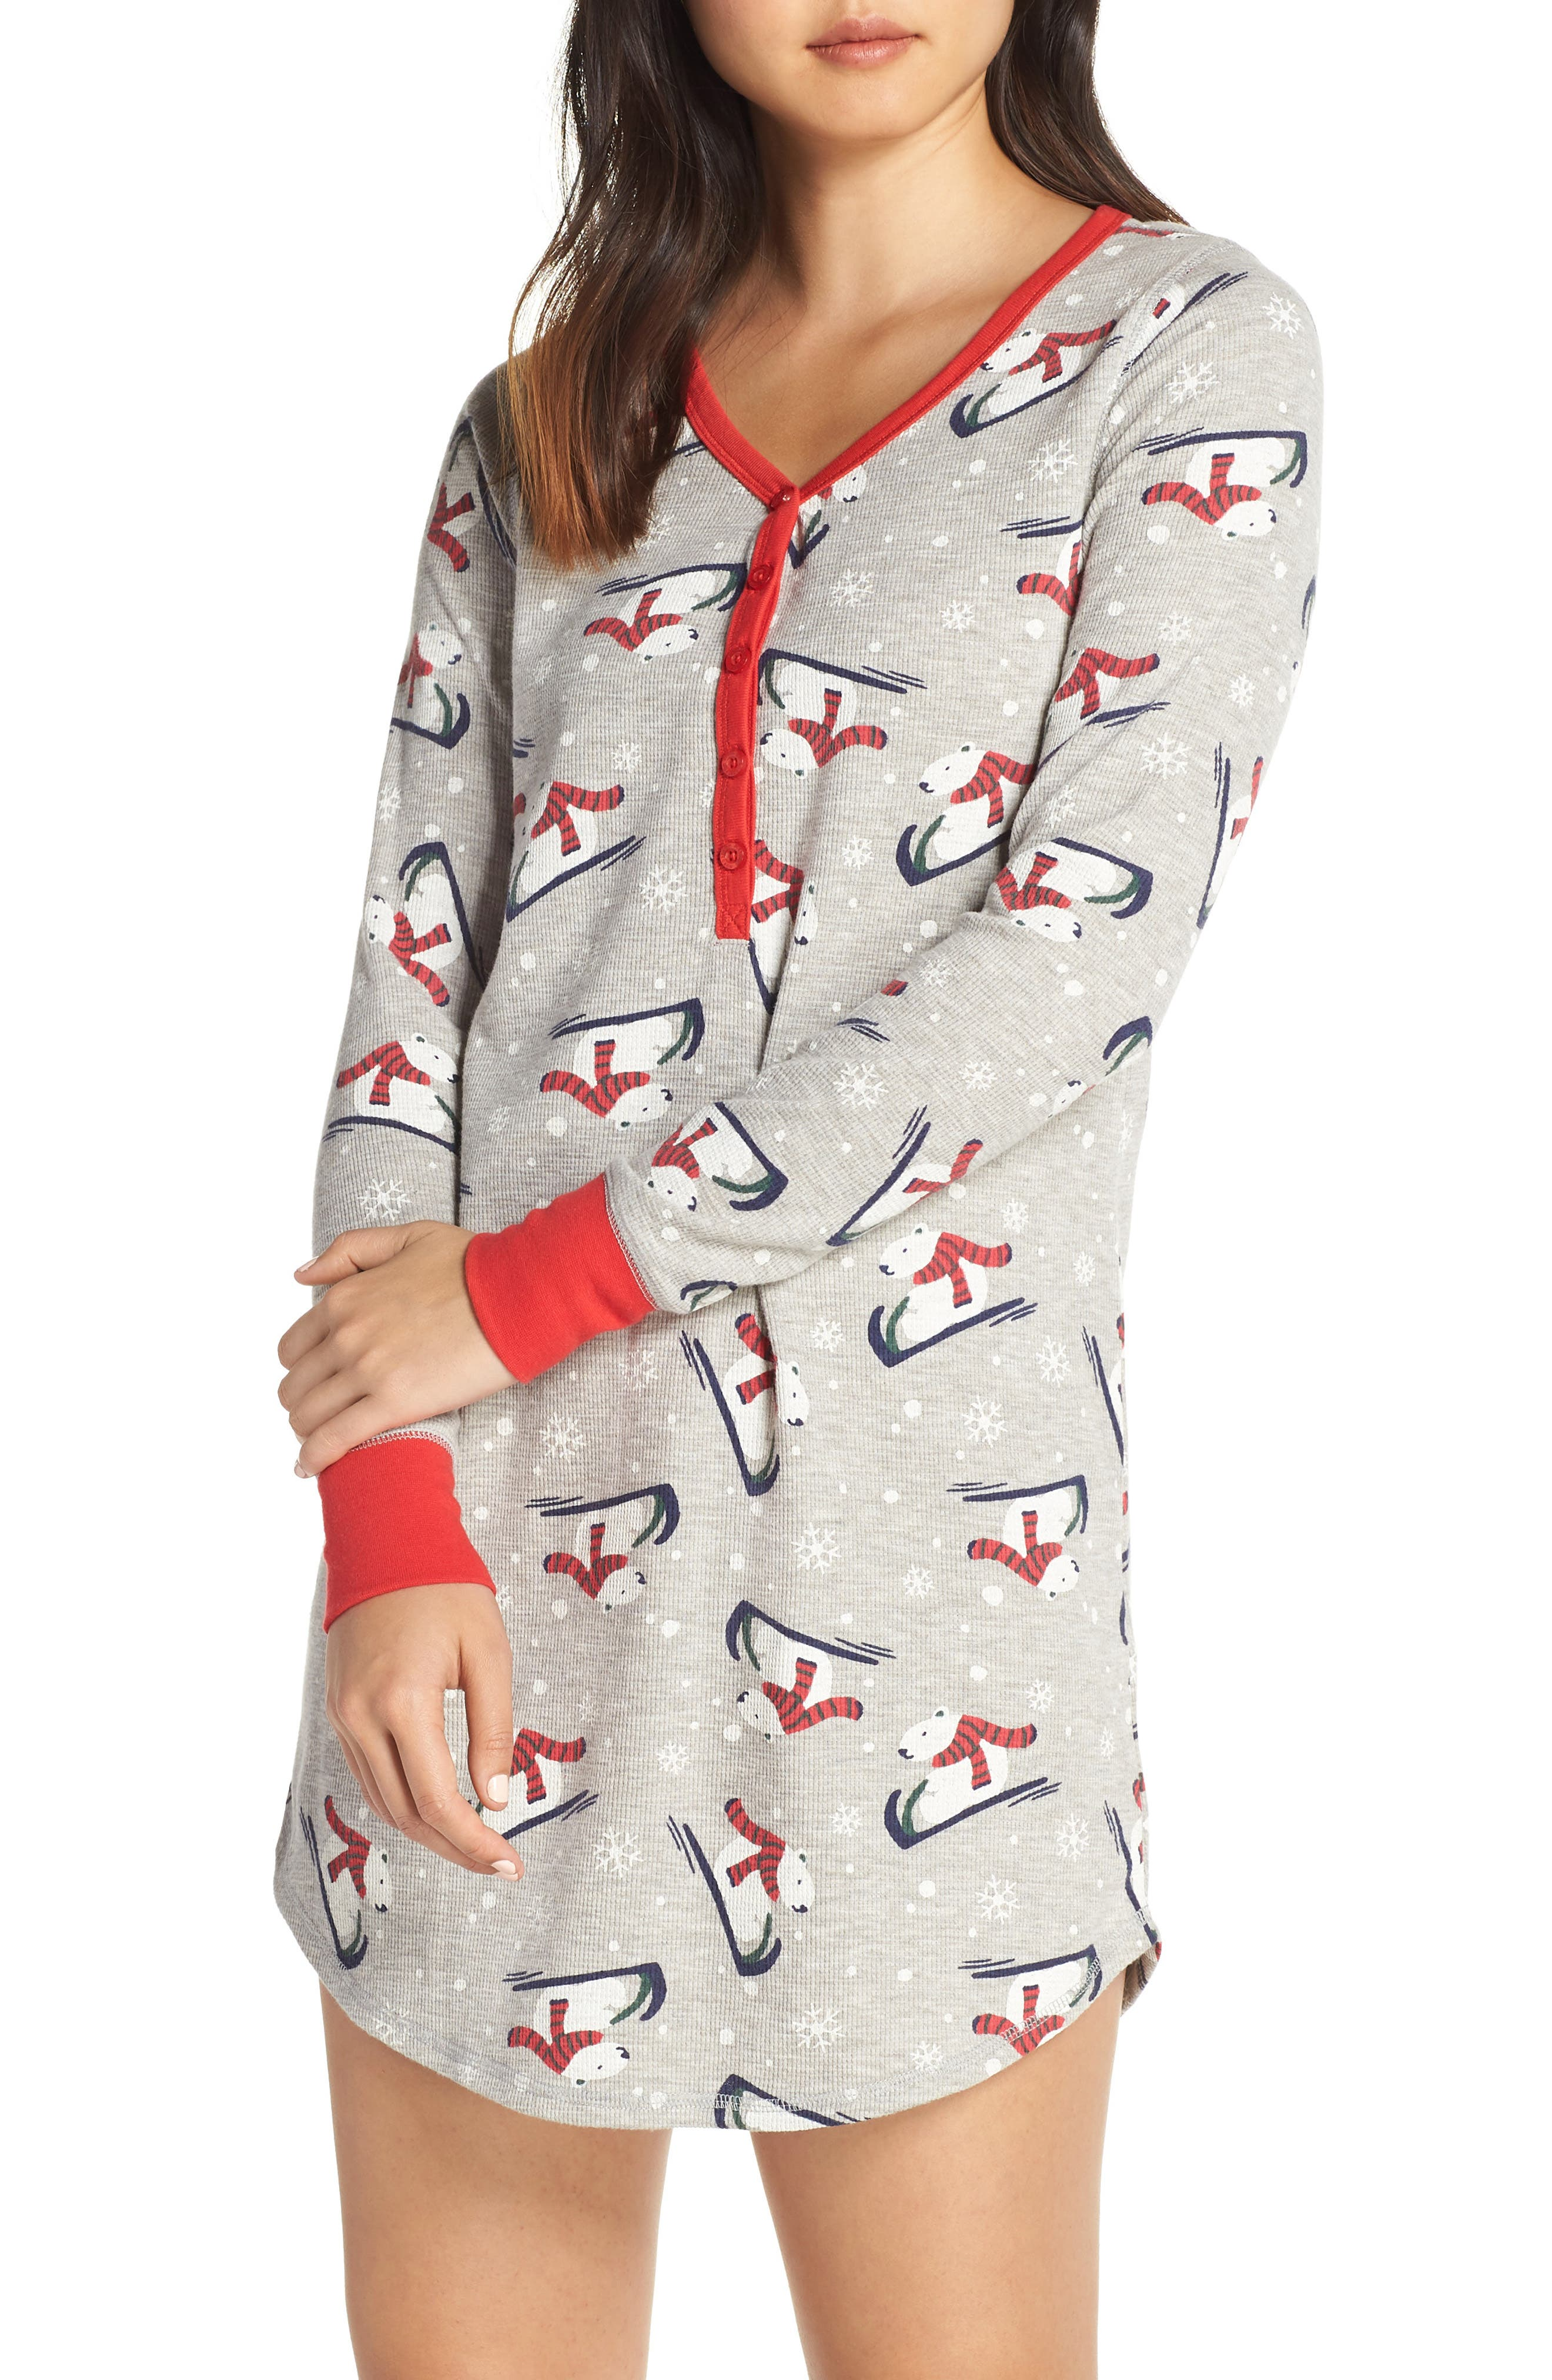 Lingerie Sleepyhead Thermal Nightshirt by Nordstrom